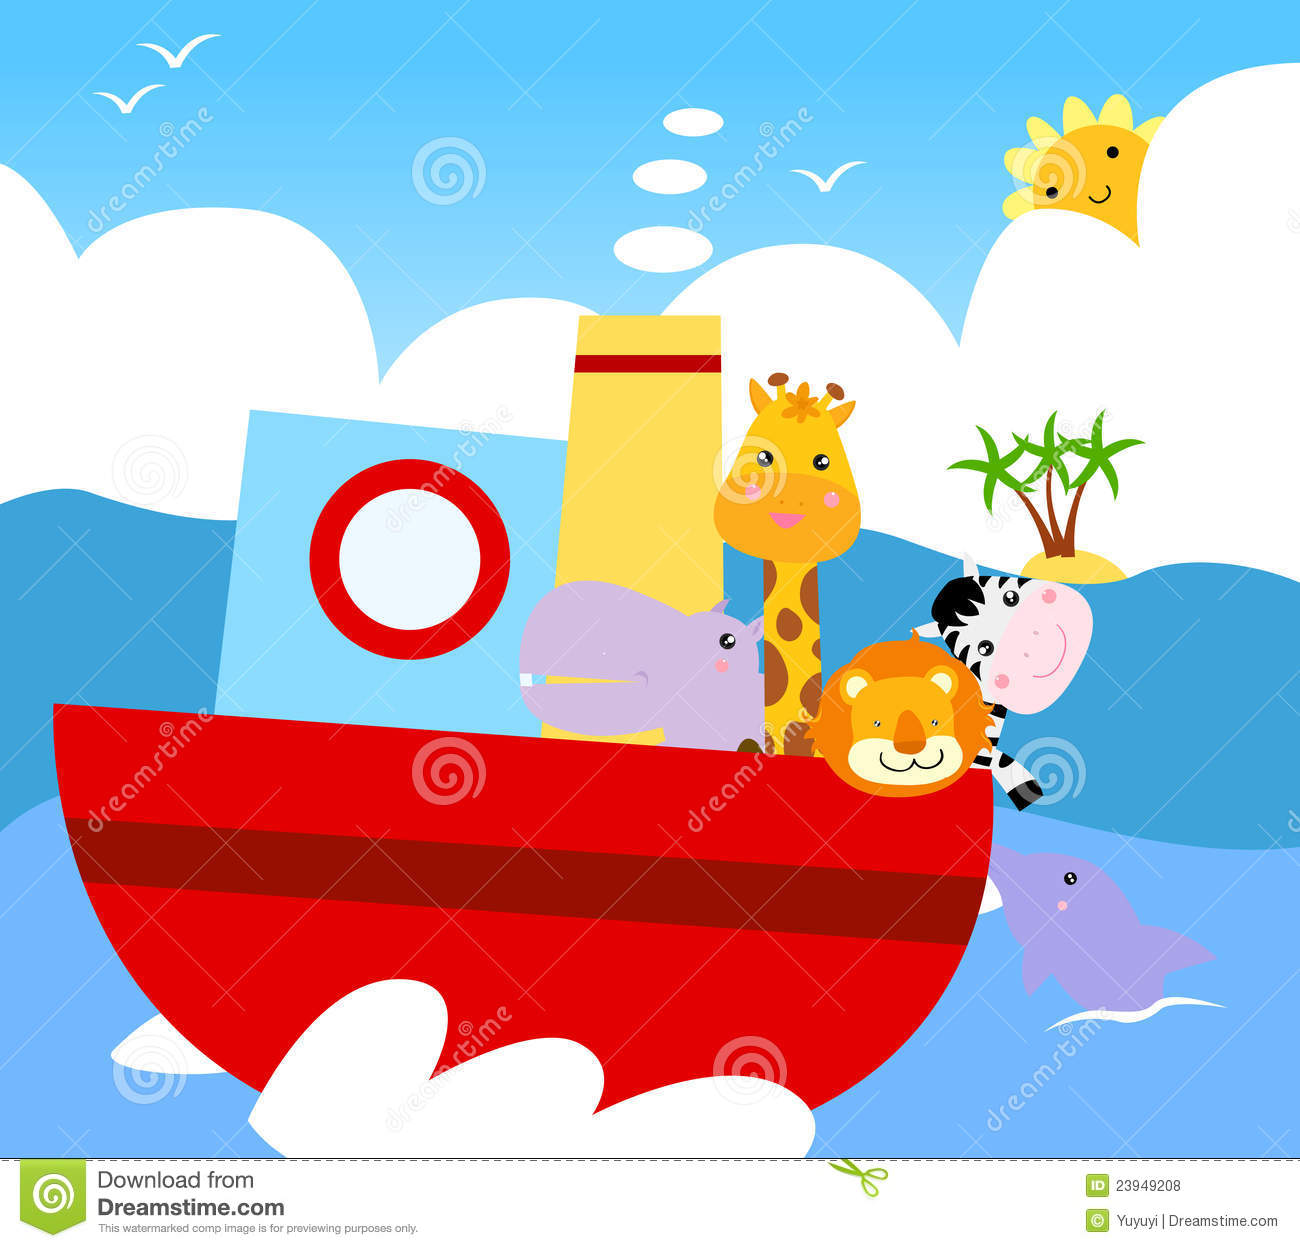 Animal Ship Royalty Free Stock Photos Image 23949208